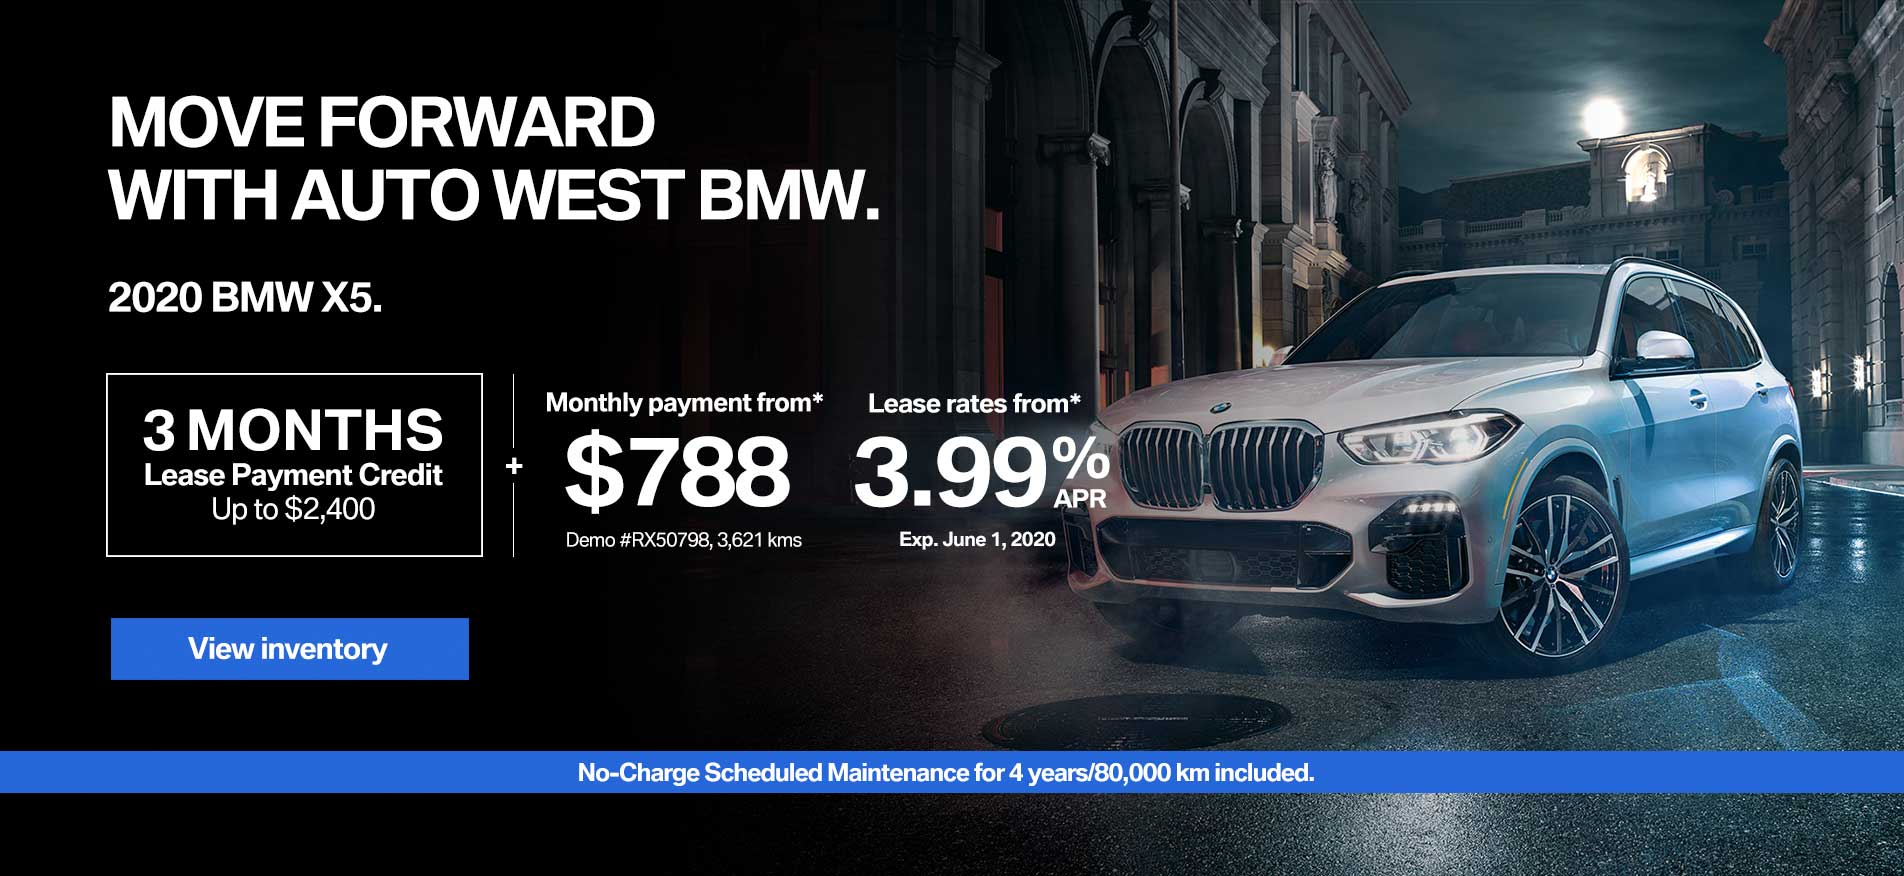 Auto West BMW Lease Payment Credit X5